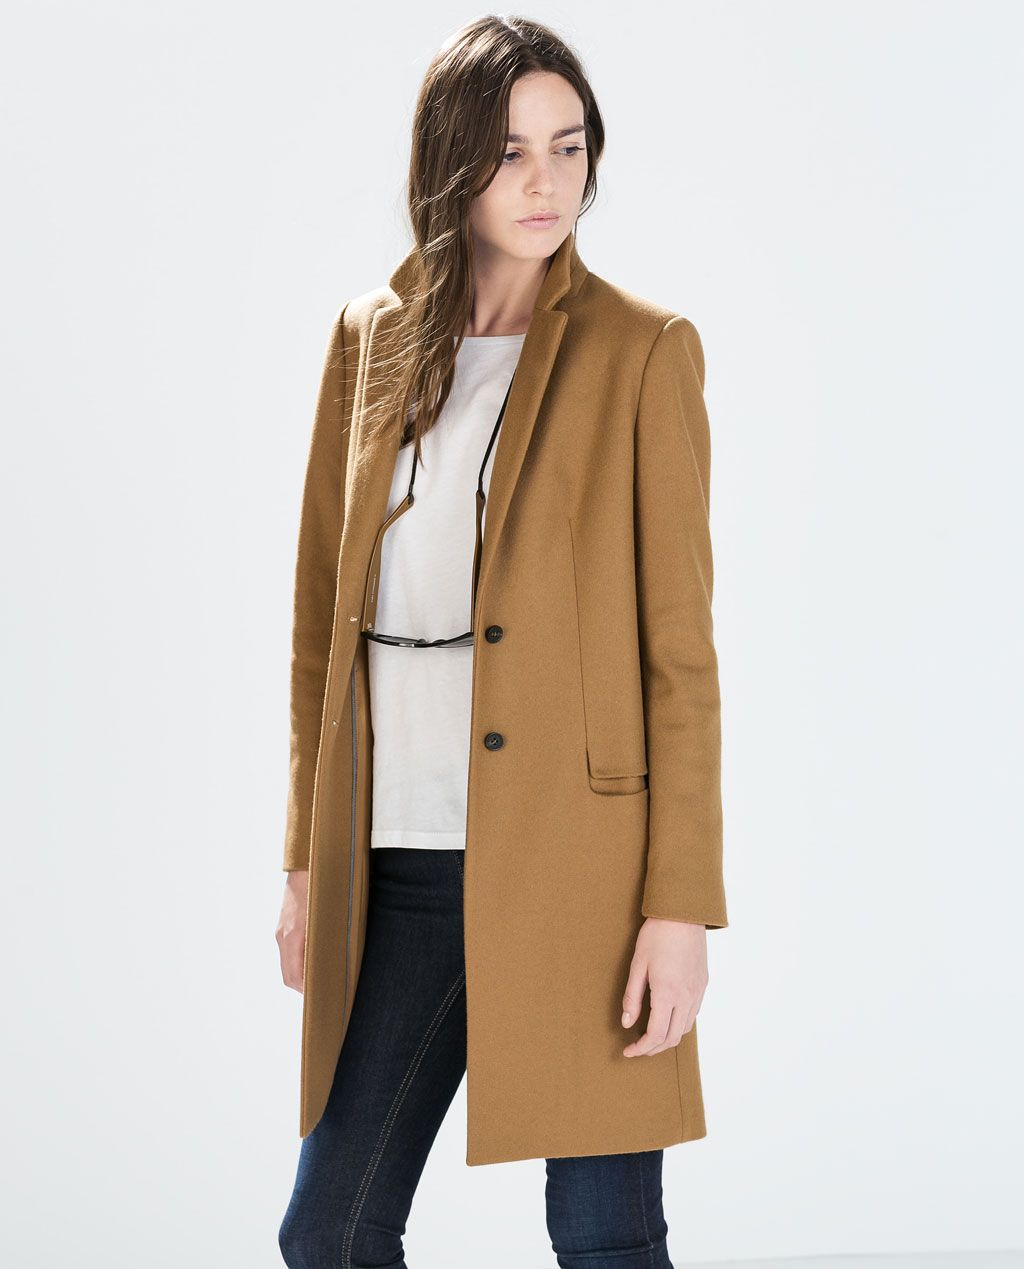 manteau femme zara camel v tements accessoires. Black Bedroom Furniture Sets. Home Design Ideas